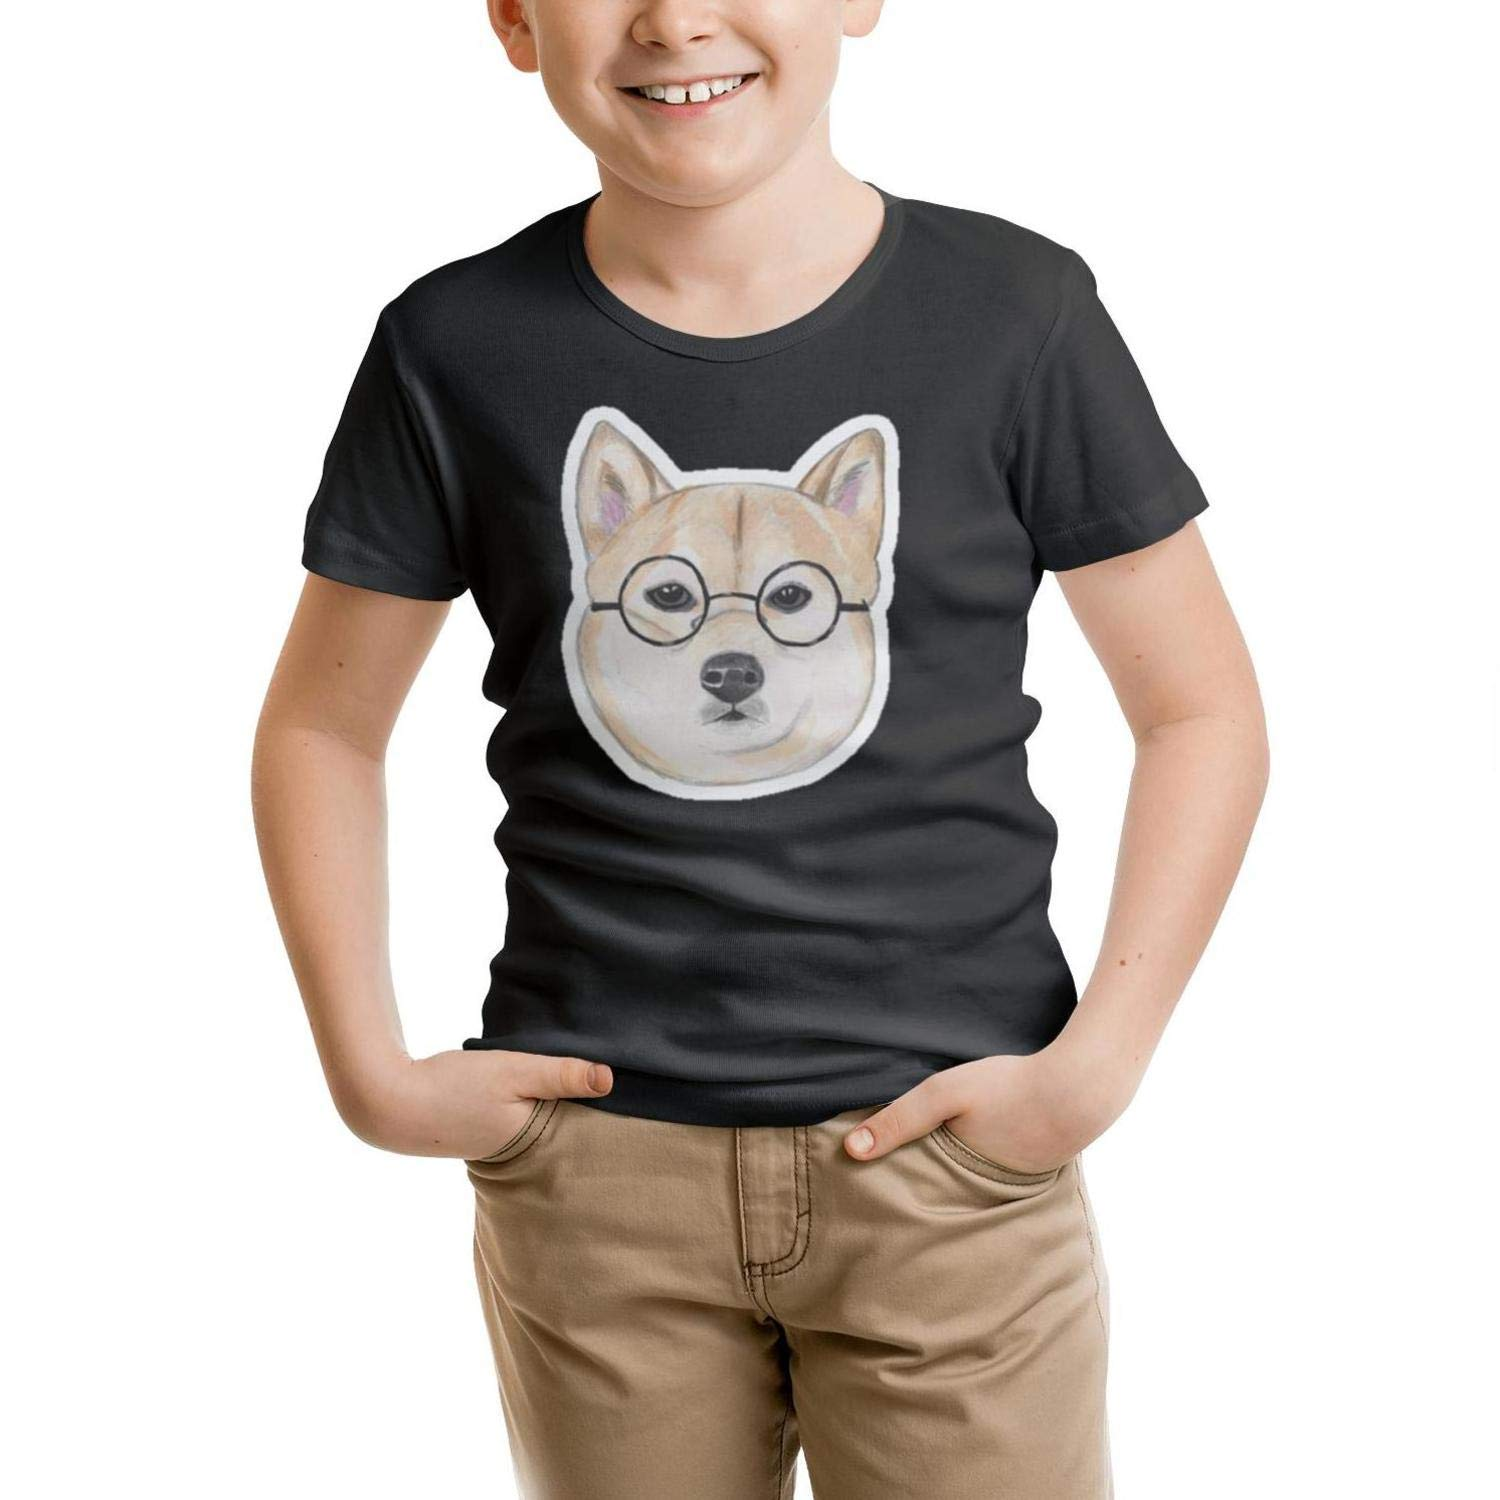 GGTHT Kid's Black Tshirts Doge Face Glasses O-Neck Short Sleeve Cotton